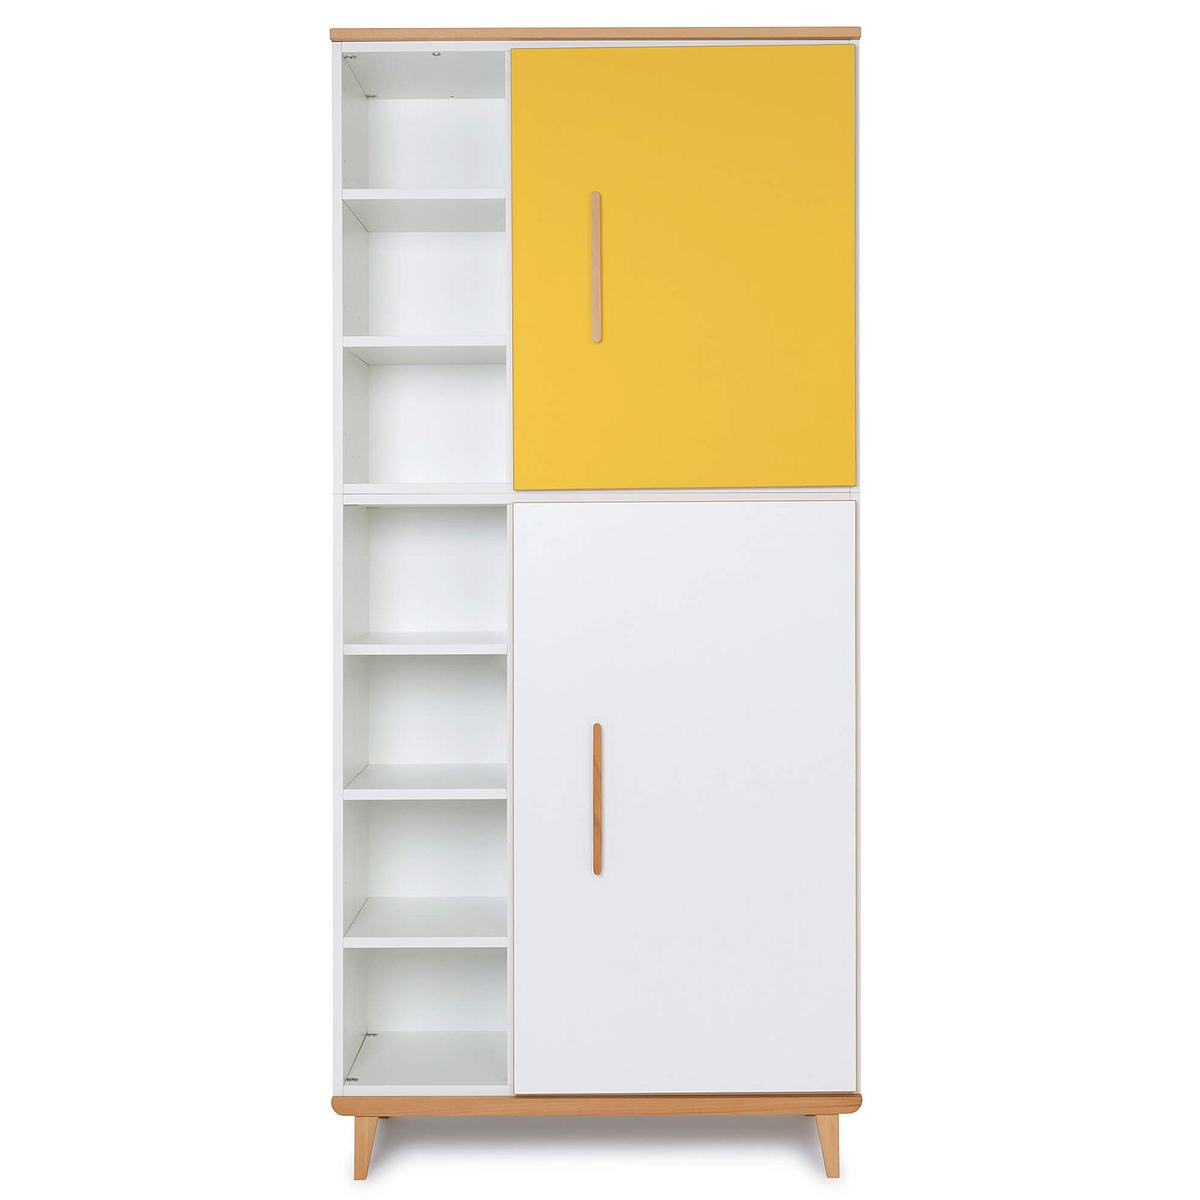 Armoire 198cm 2 portes NADO By A.K. sunshine yellow-white